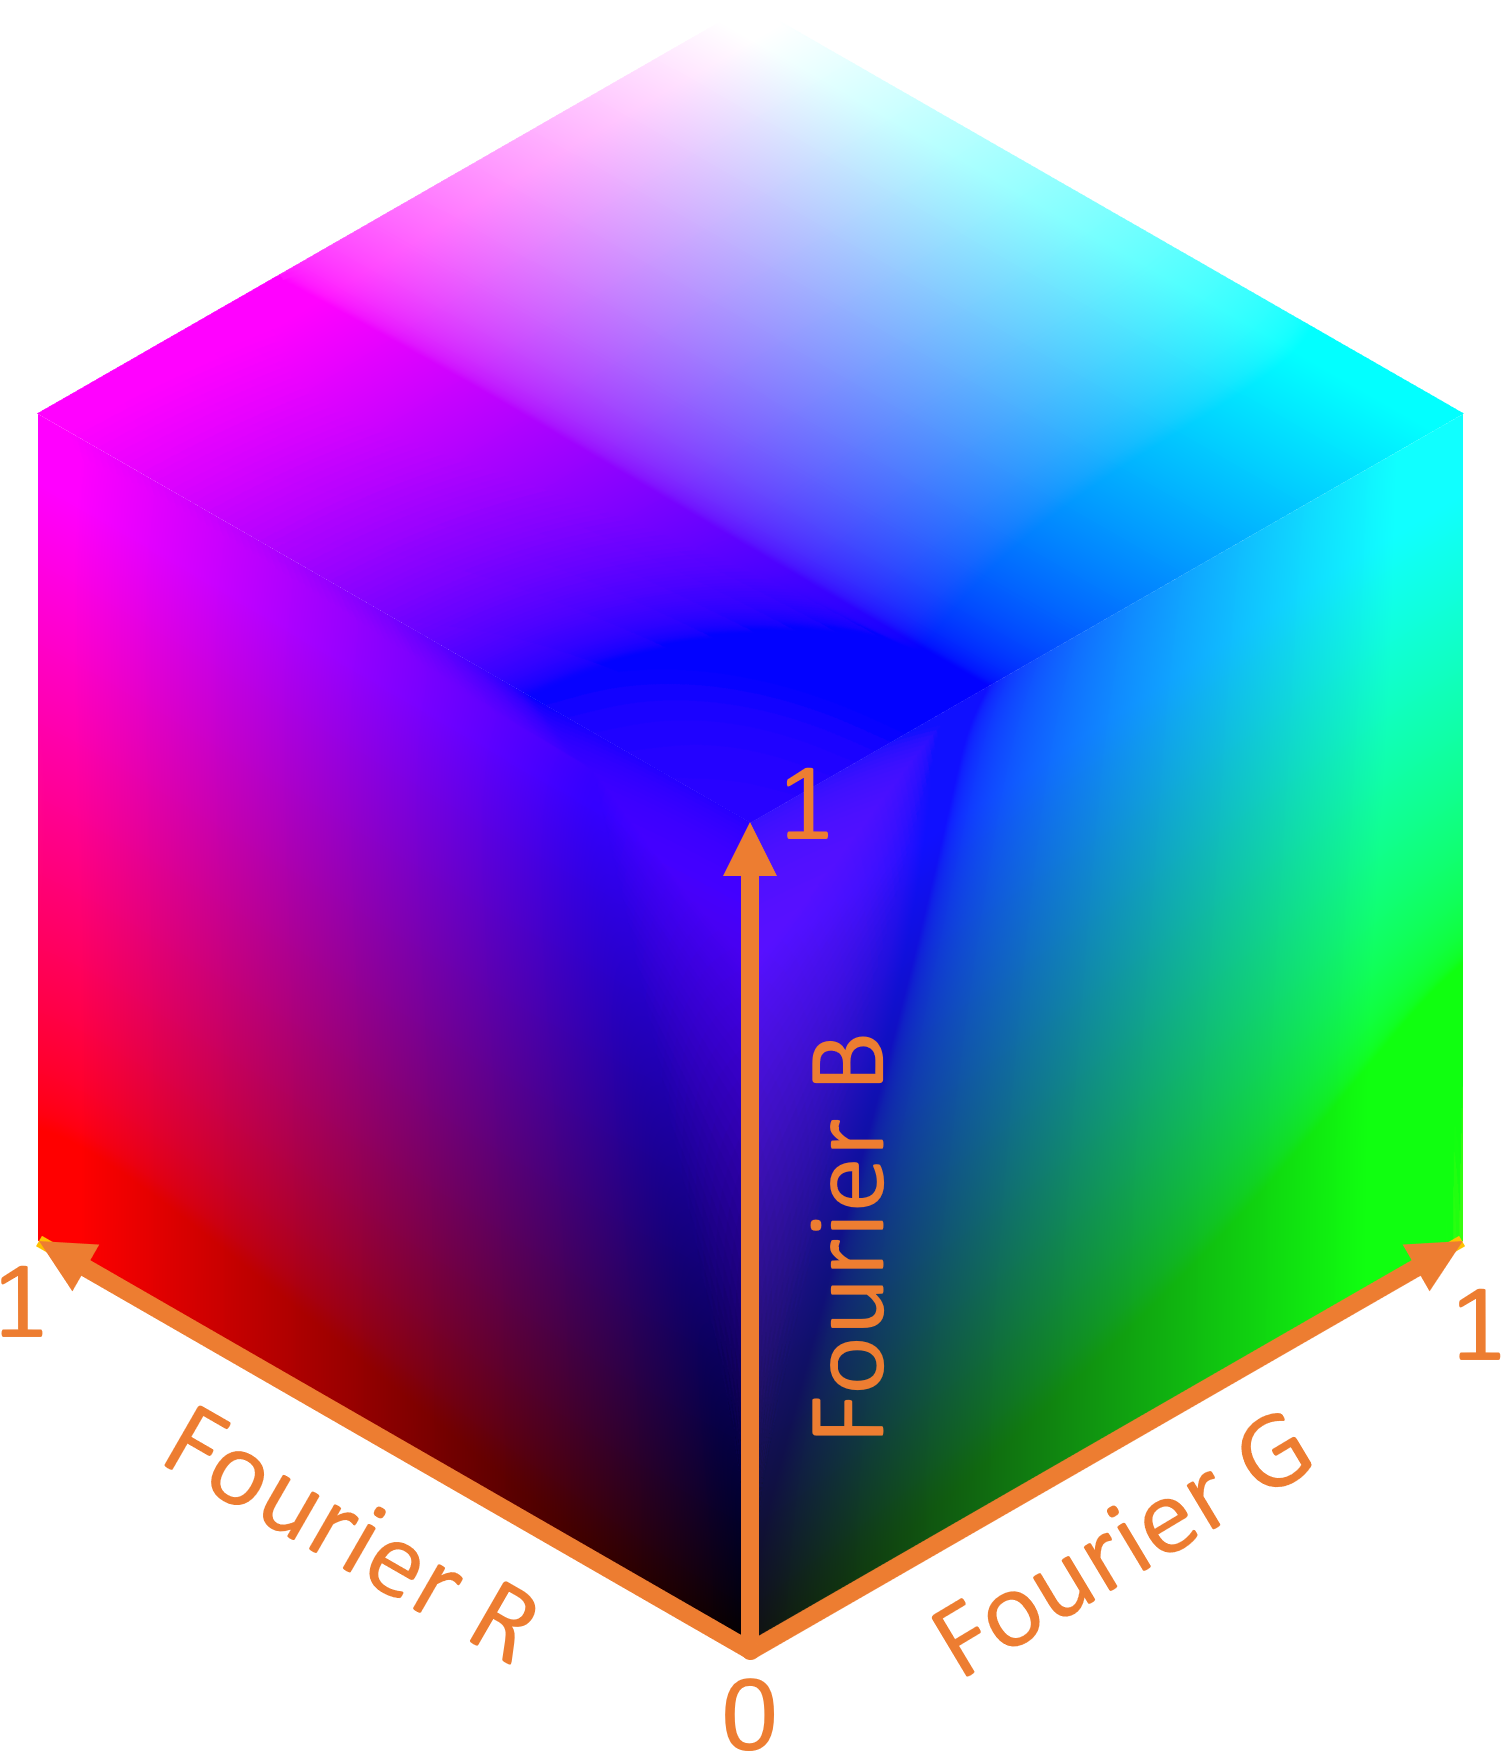 The Fourier sRGB color space